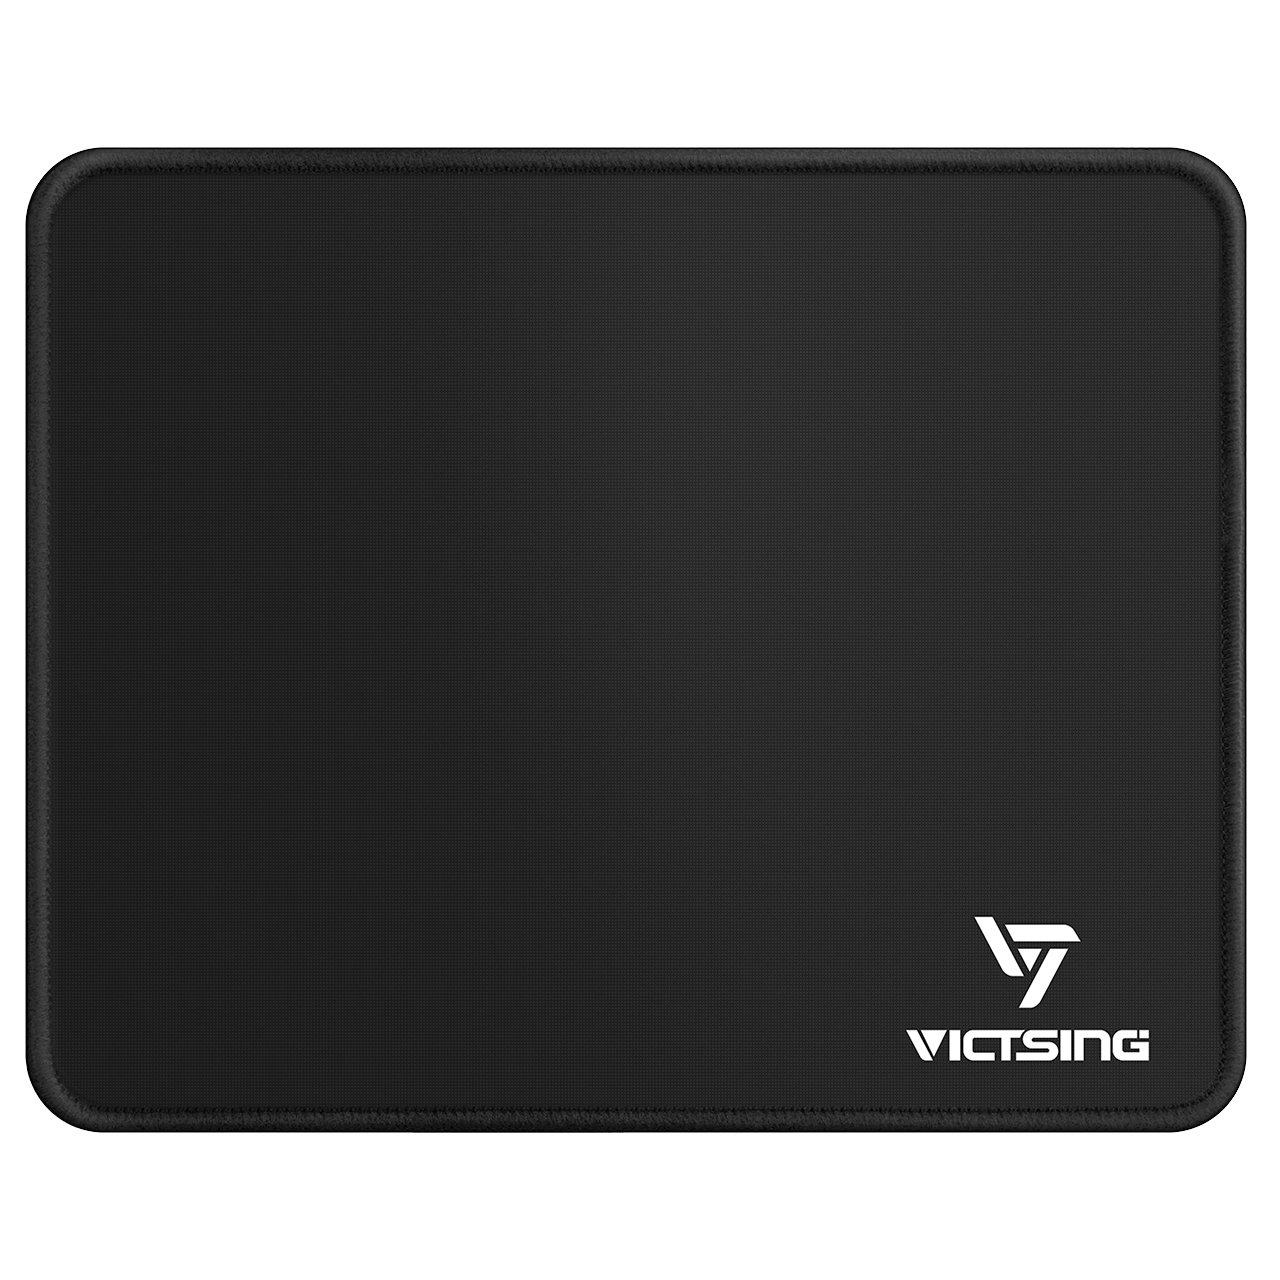 VicTsing Gaming Mouse Pad Mat Large Size (800 x 400 x 2.5mm) Extended Keyboard Pad Water-Resistant with Non-Slip Rubber Base, Special-Textured Smooth Surface, Durable Stitched Edges - Black CAAS1-YPVTPC123AB